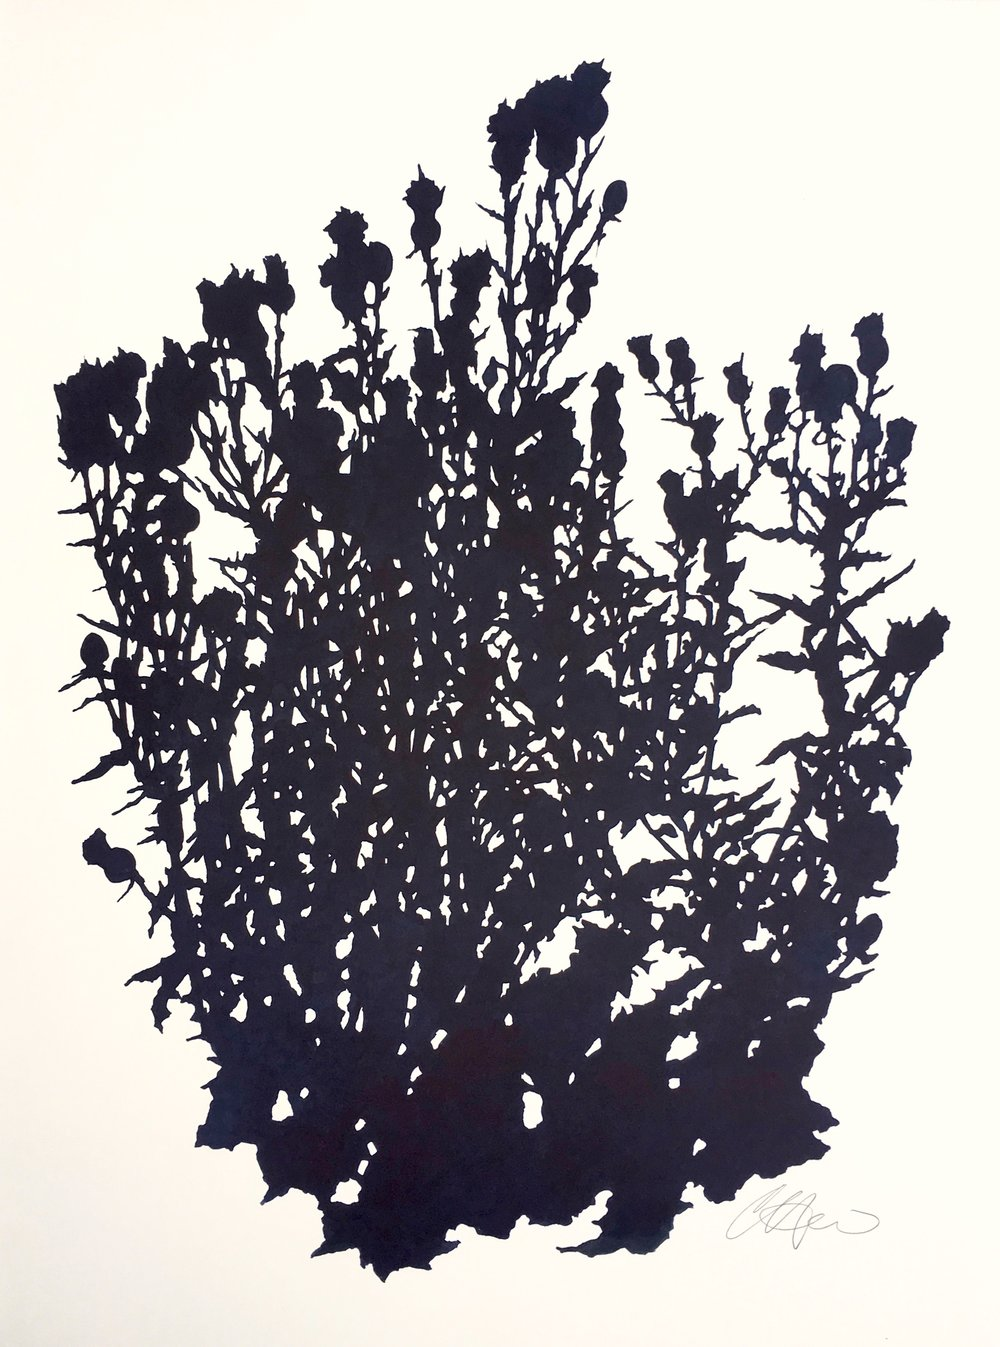 """Thistle Study, Matfield Green 1 (August), ink on paper, 30 x 22.5"""""""